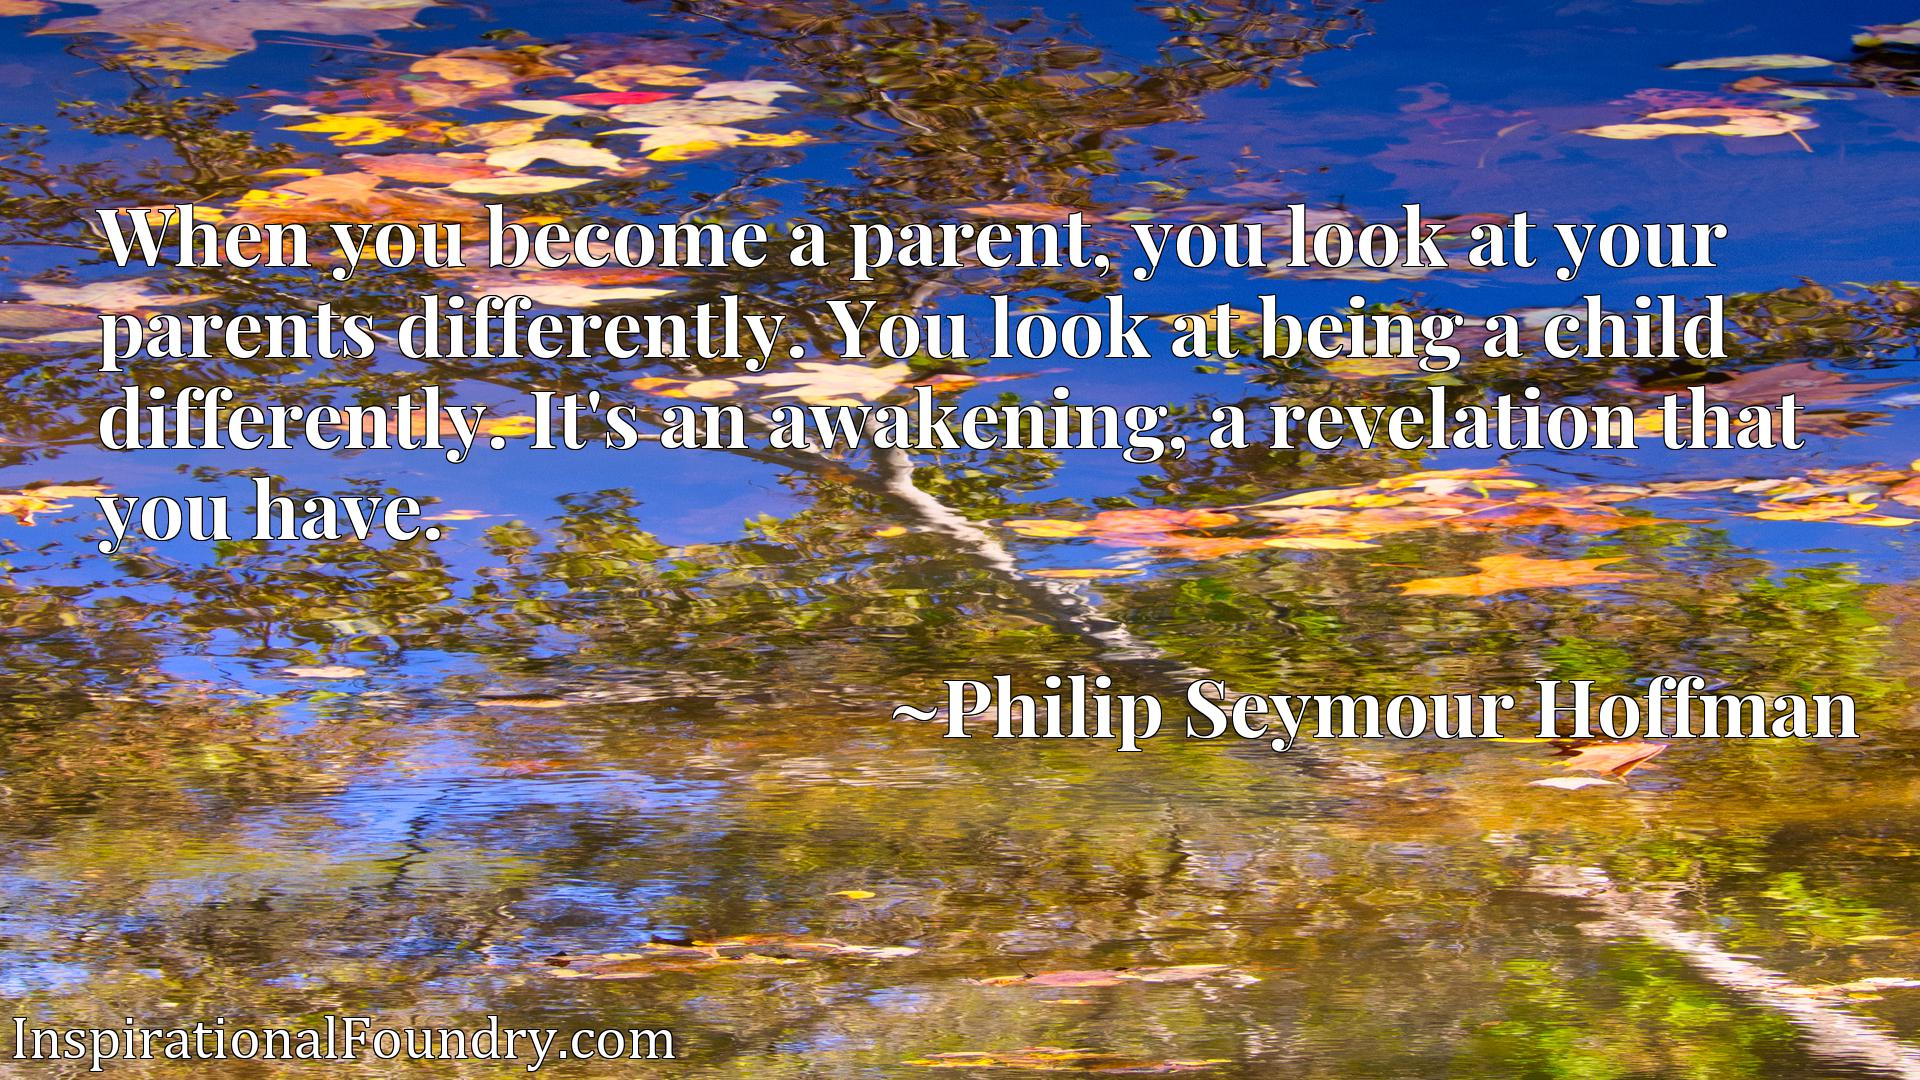 When you become a parent, you look at your parents differently. You look at being a child differently. It's an awakening, a revelation that you have.